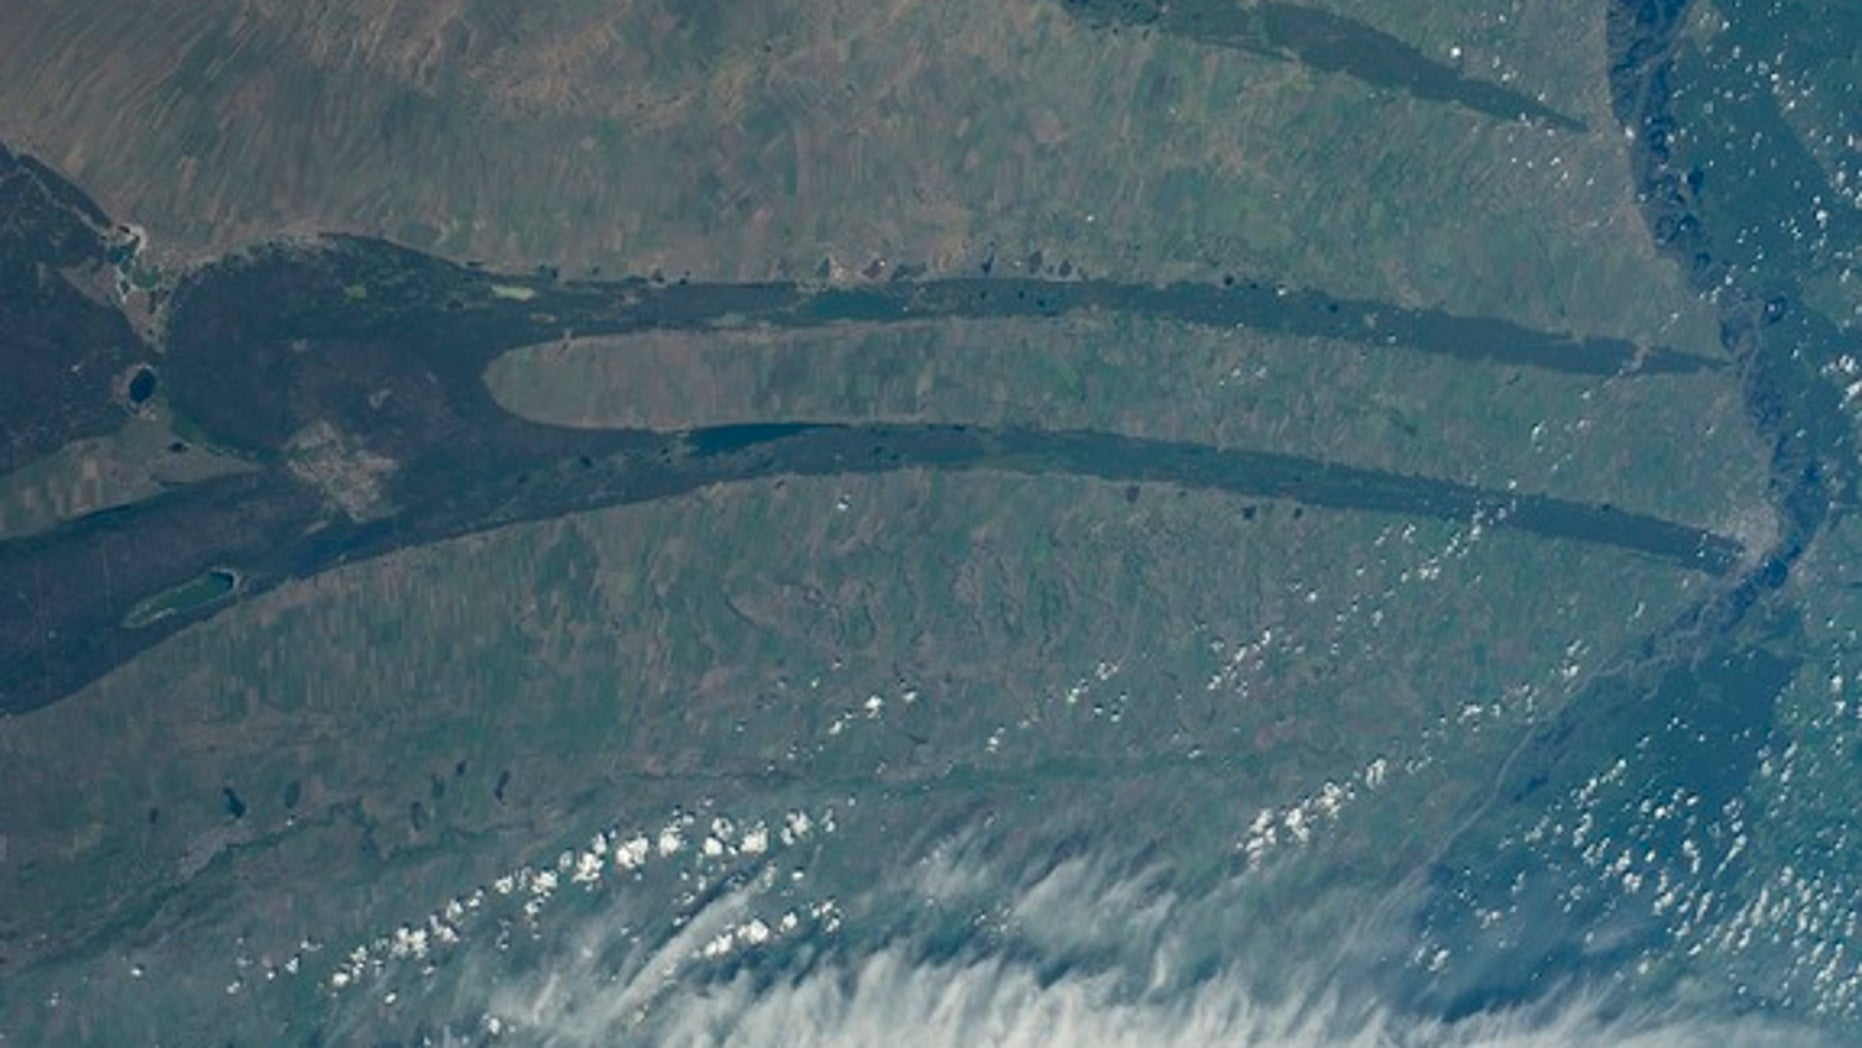 Strange spiky shapes slash across the Kulundra Steppe of Siberia in an astronaut photograph snapped from the International Space Station in June 2014. From left to right, this image covers about 185 miles (300 kilometers) of ground.